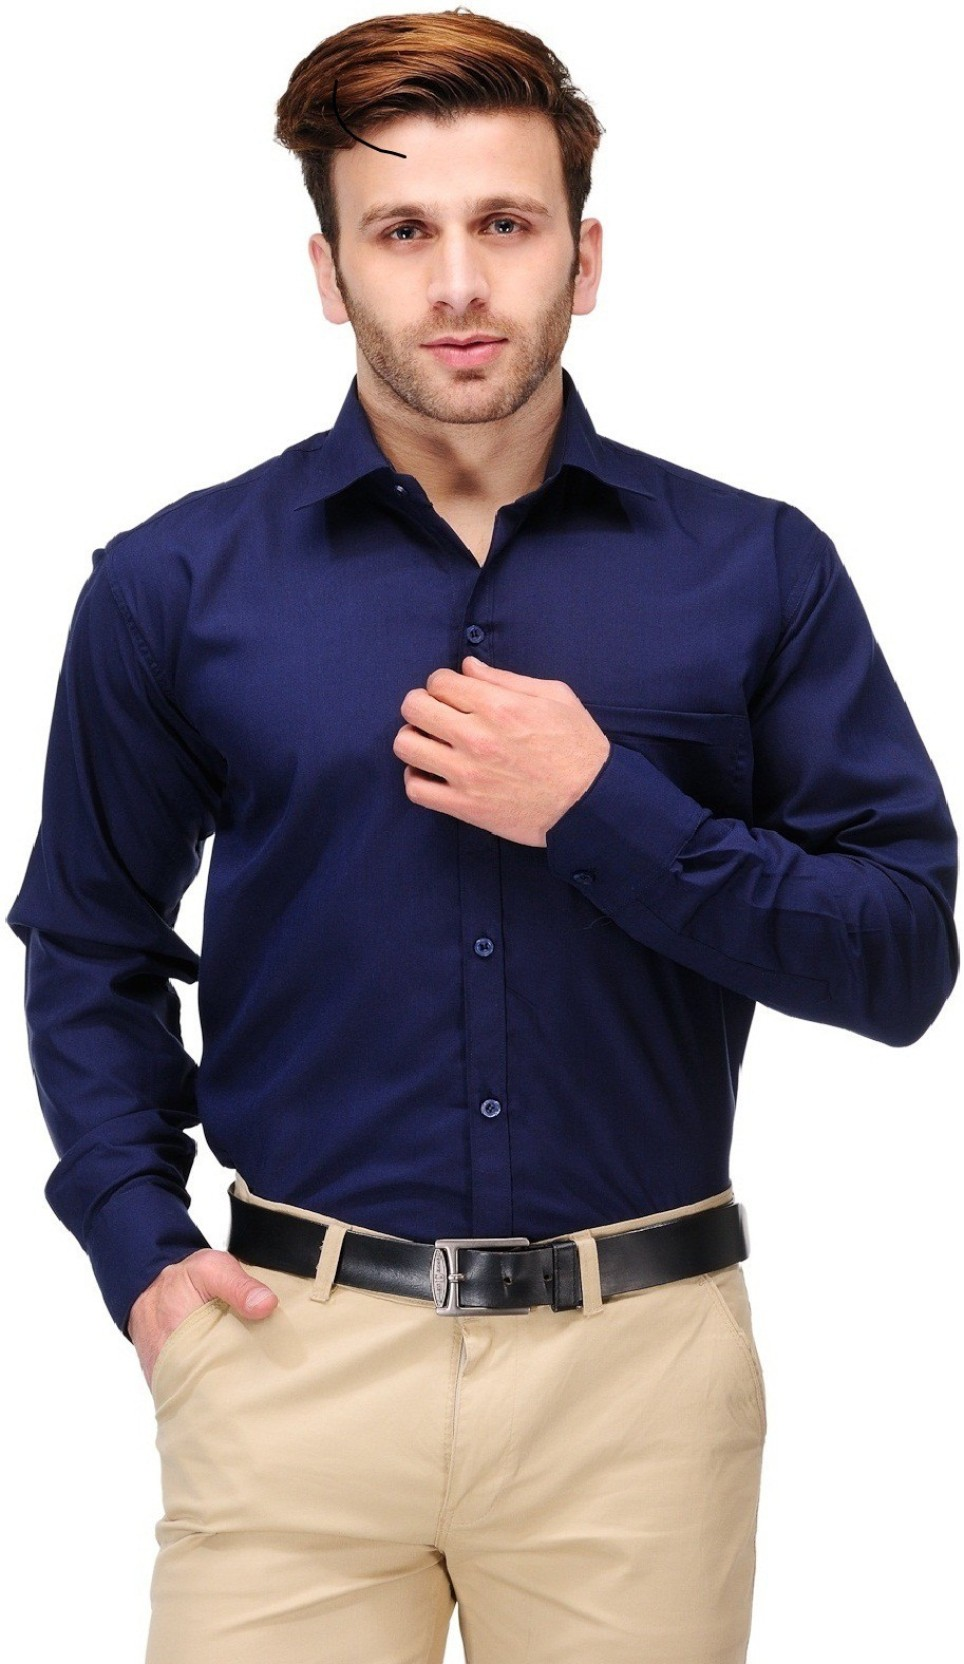 Free shipping and returns on Men's Blue Dress Shirts at efwaidi.ga